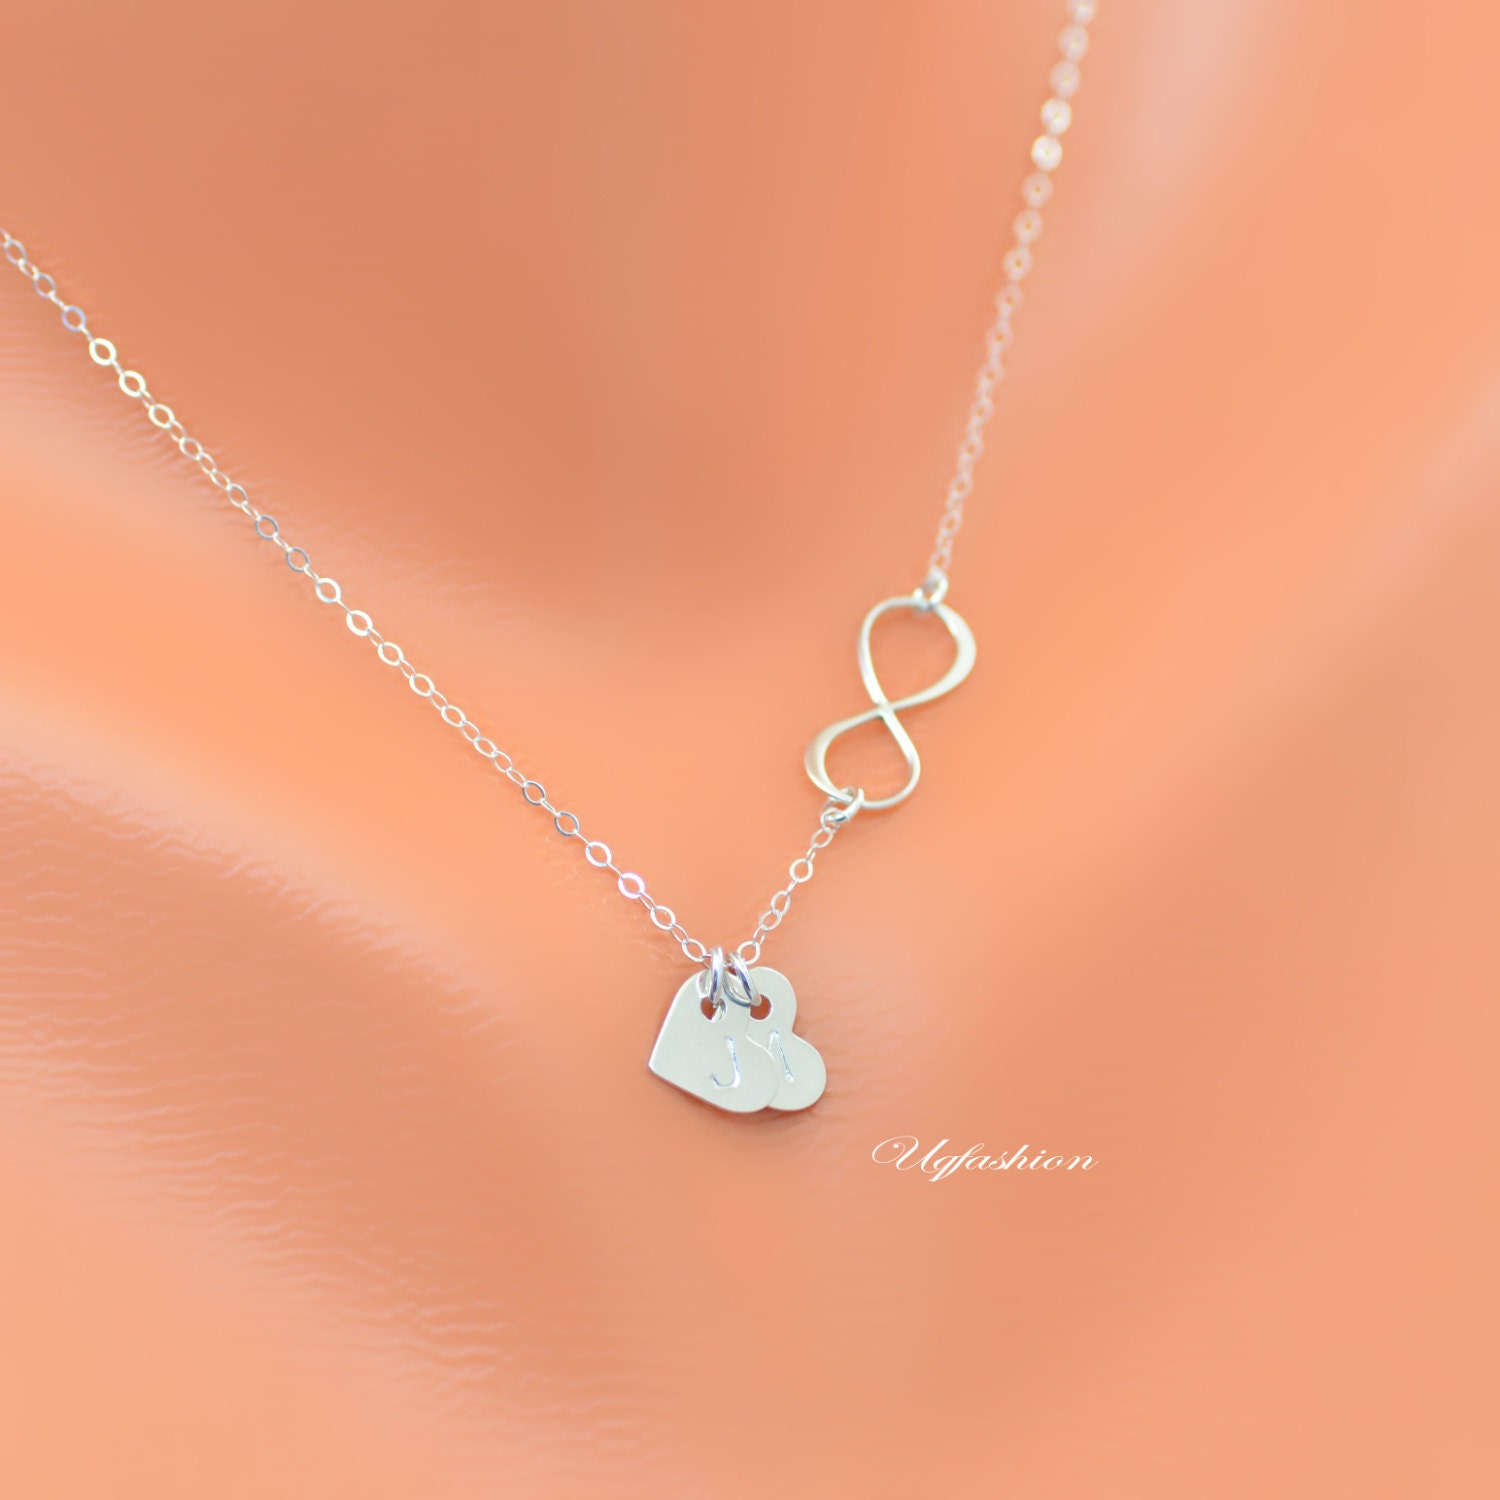 personalizde heart necklace infinity necklace name necklace. Black Bedroom Furniture Sets. Home Design Ideas